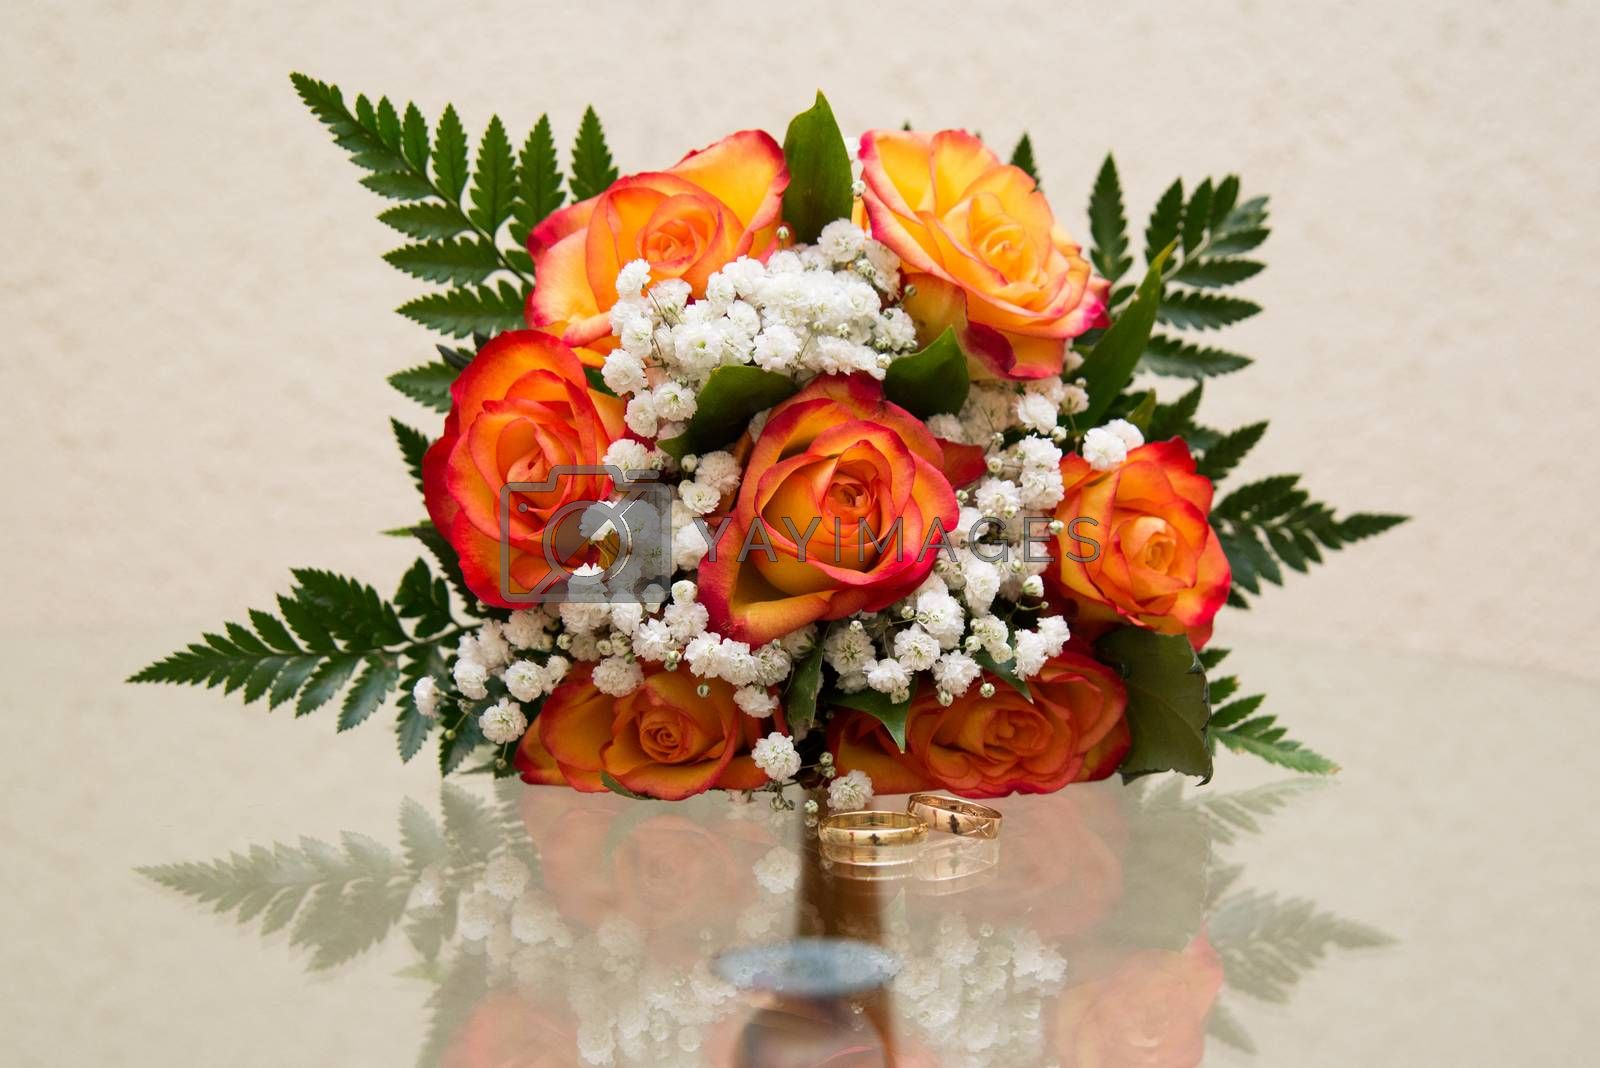 Two beautiful gold wedding rings lie on a bouquet. Orange roses.